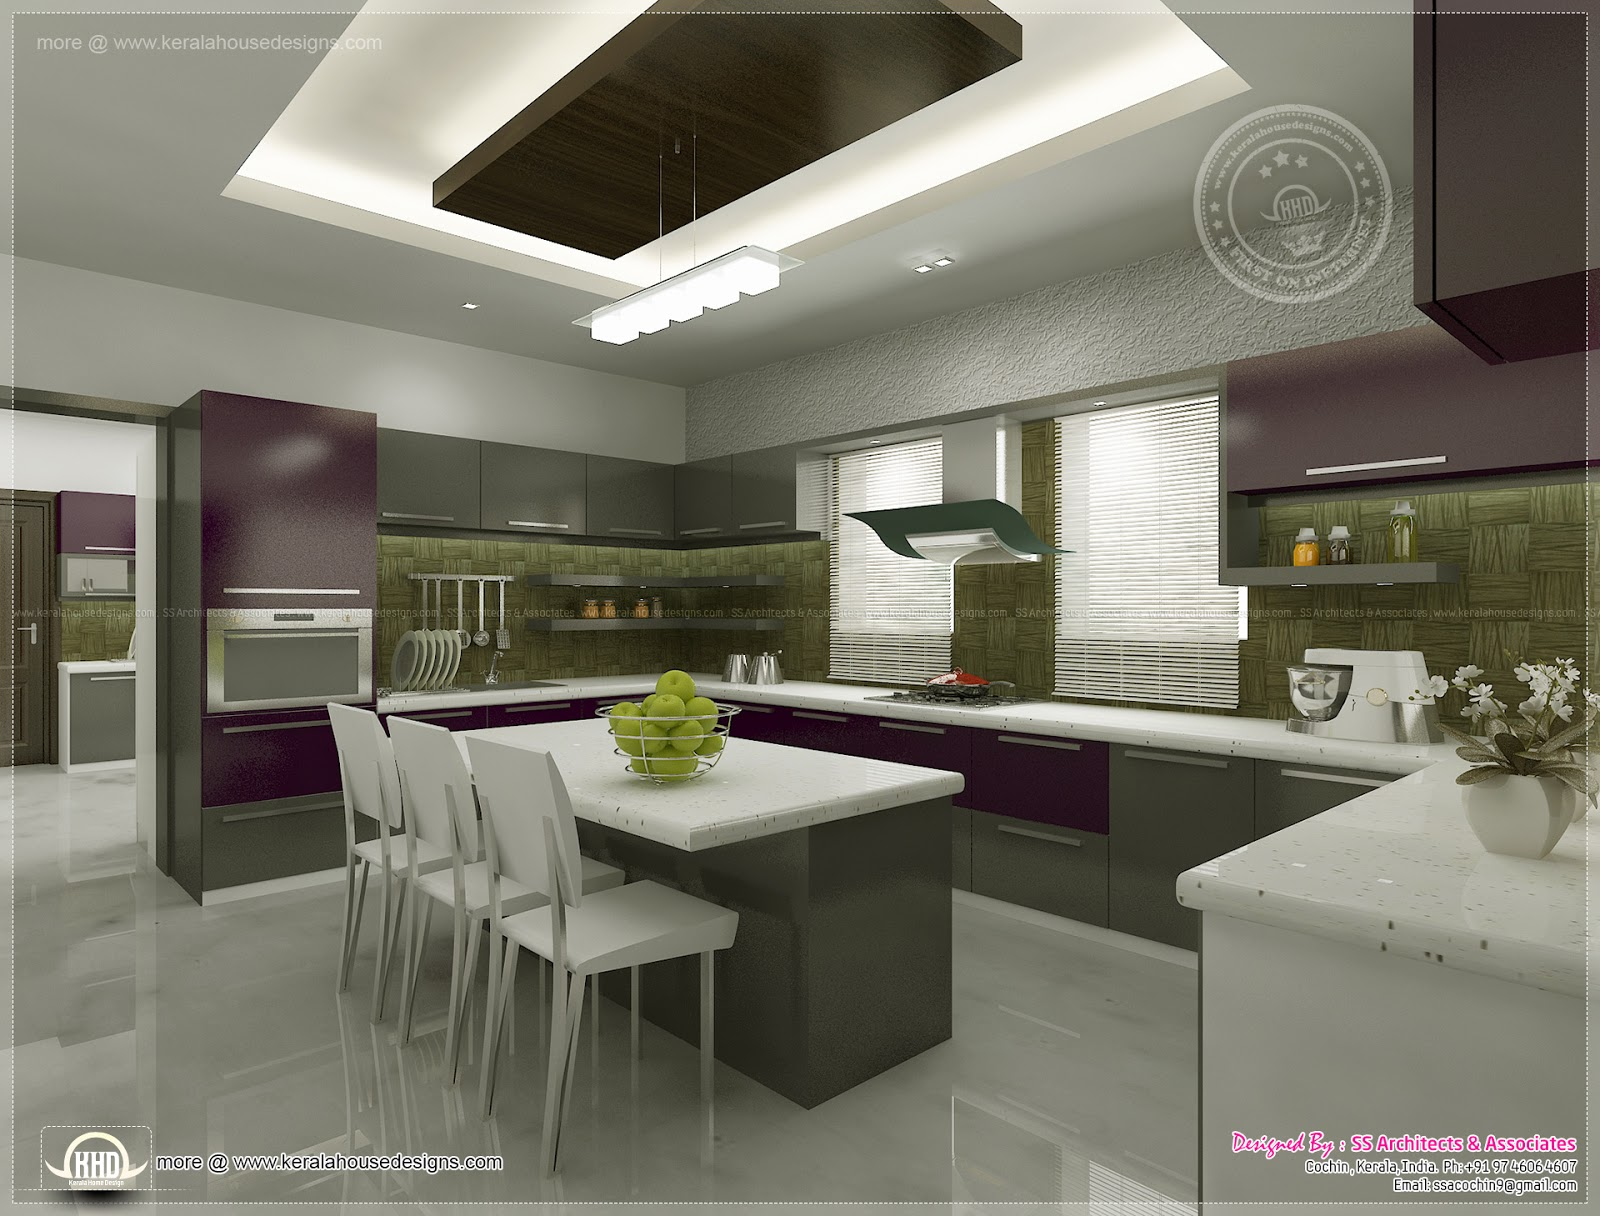 Kitchen interior views by ss architects cochin kerala for Interior designs in kerala